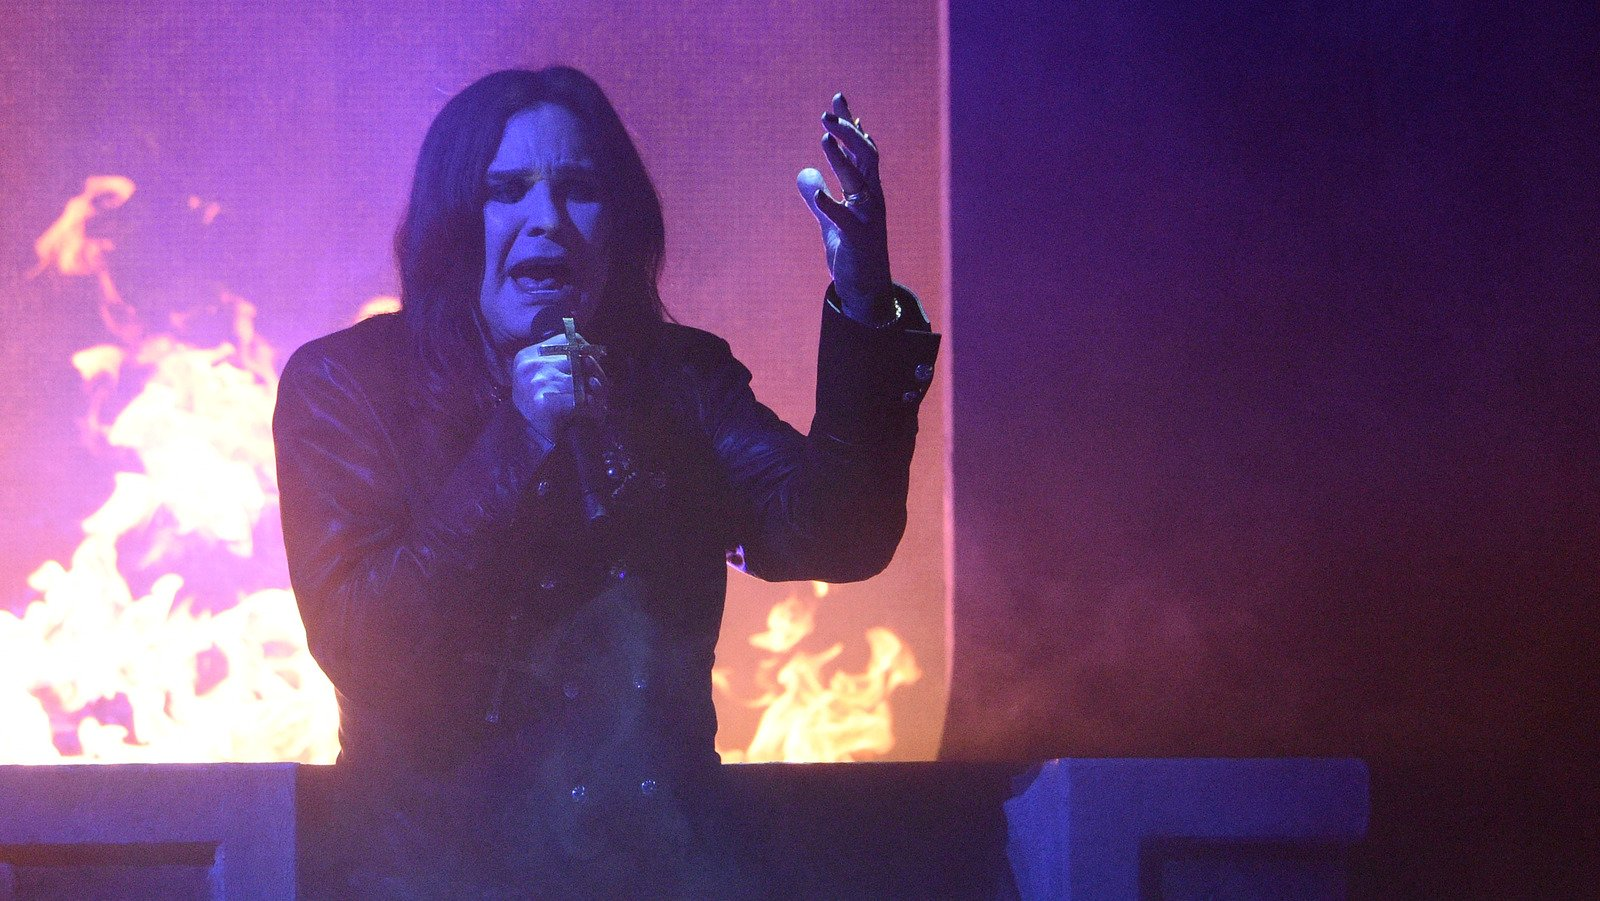 How Ozzy Osbourne Got His Stage Name